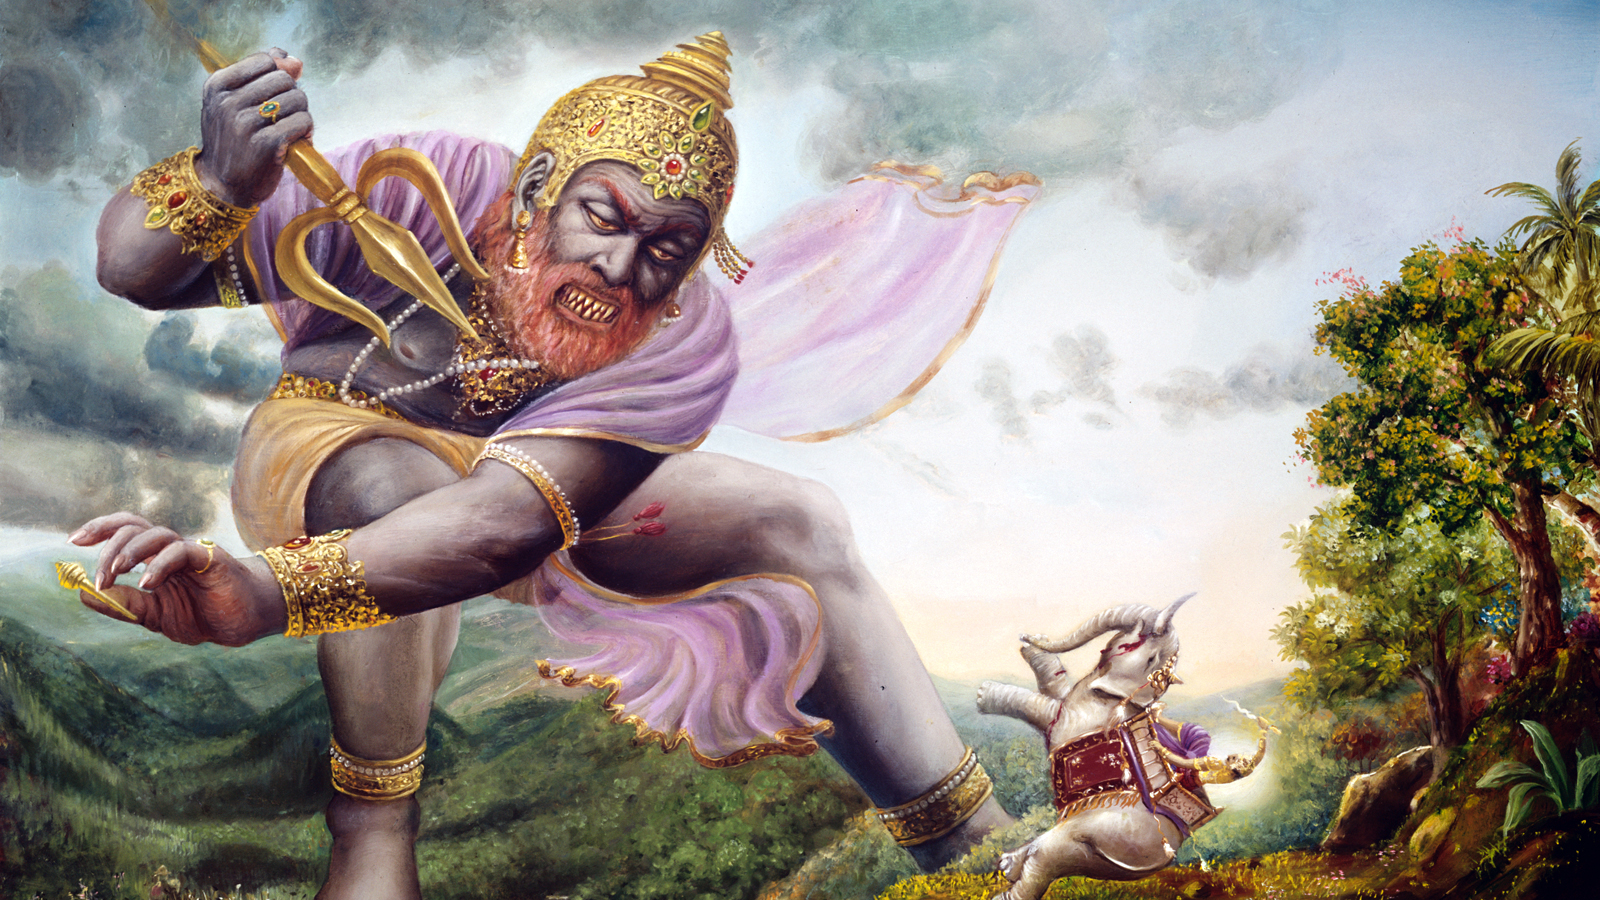 Vritrasura attacks Indra